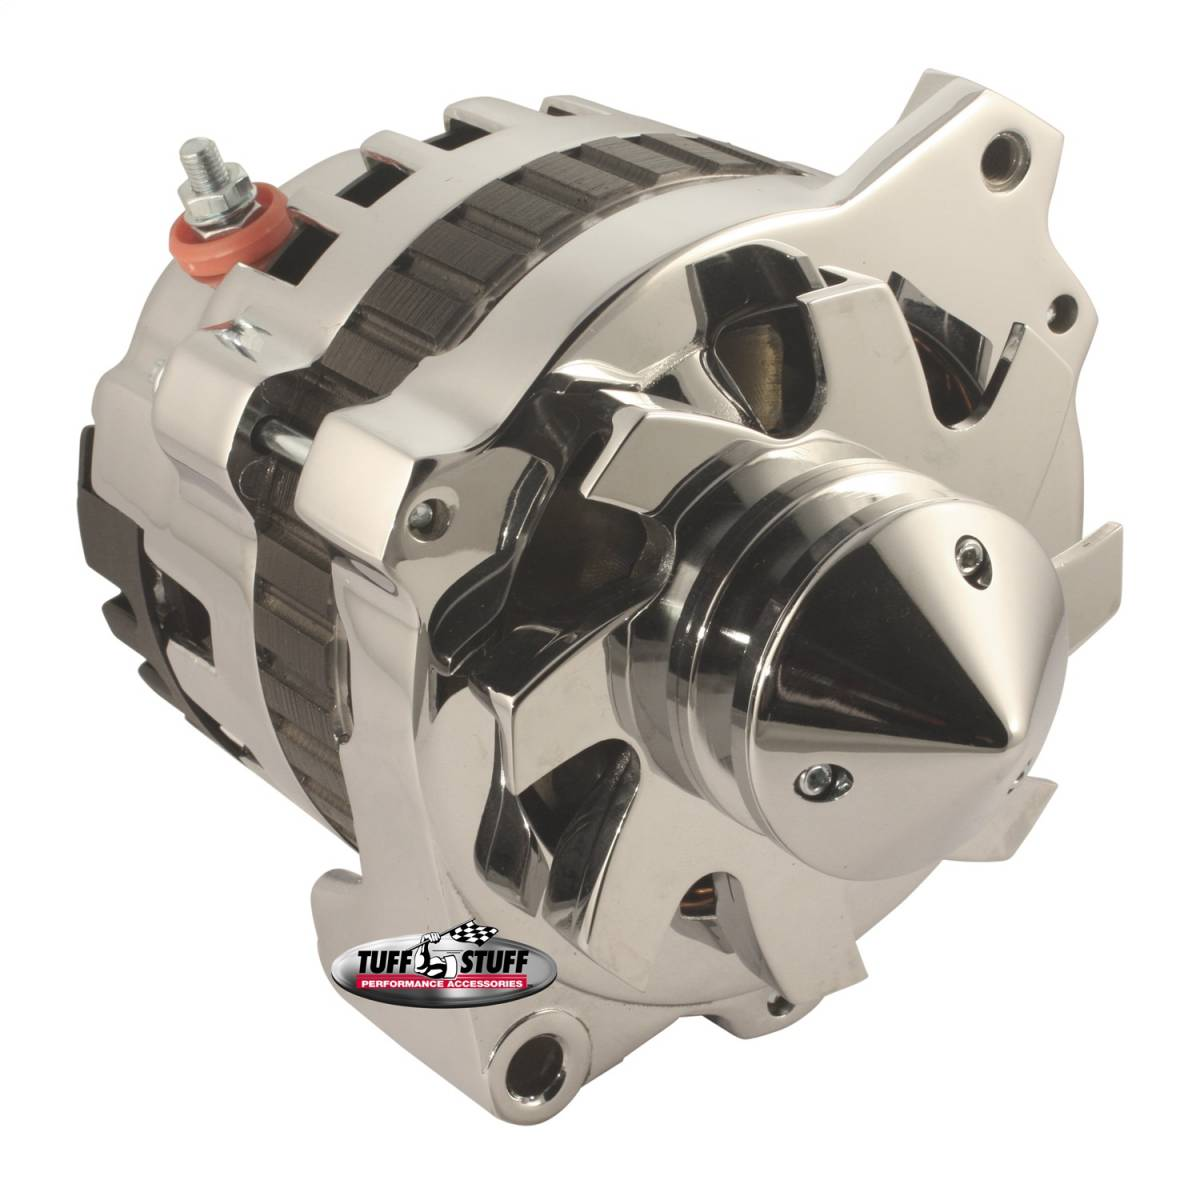 Tuff Stuff Performance - Silver Bullet Alternator 160 AMP 1 Wire Or OEM Hookup V Groove Pulley 6.125 in. Bolt To Bolt Chrome 7866ABULL